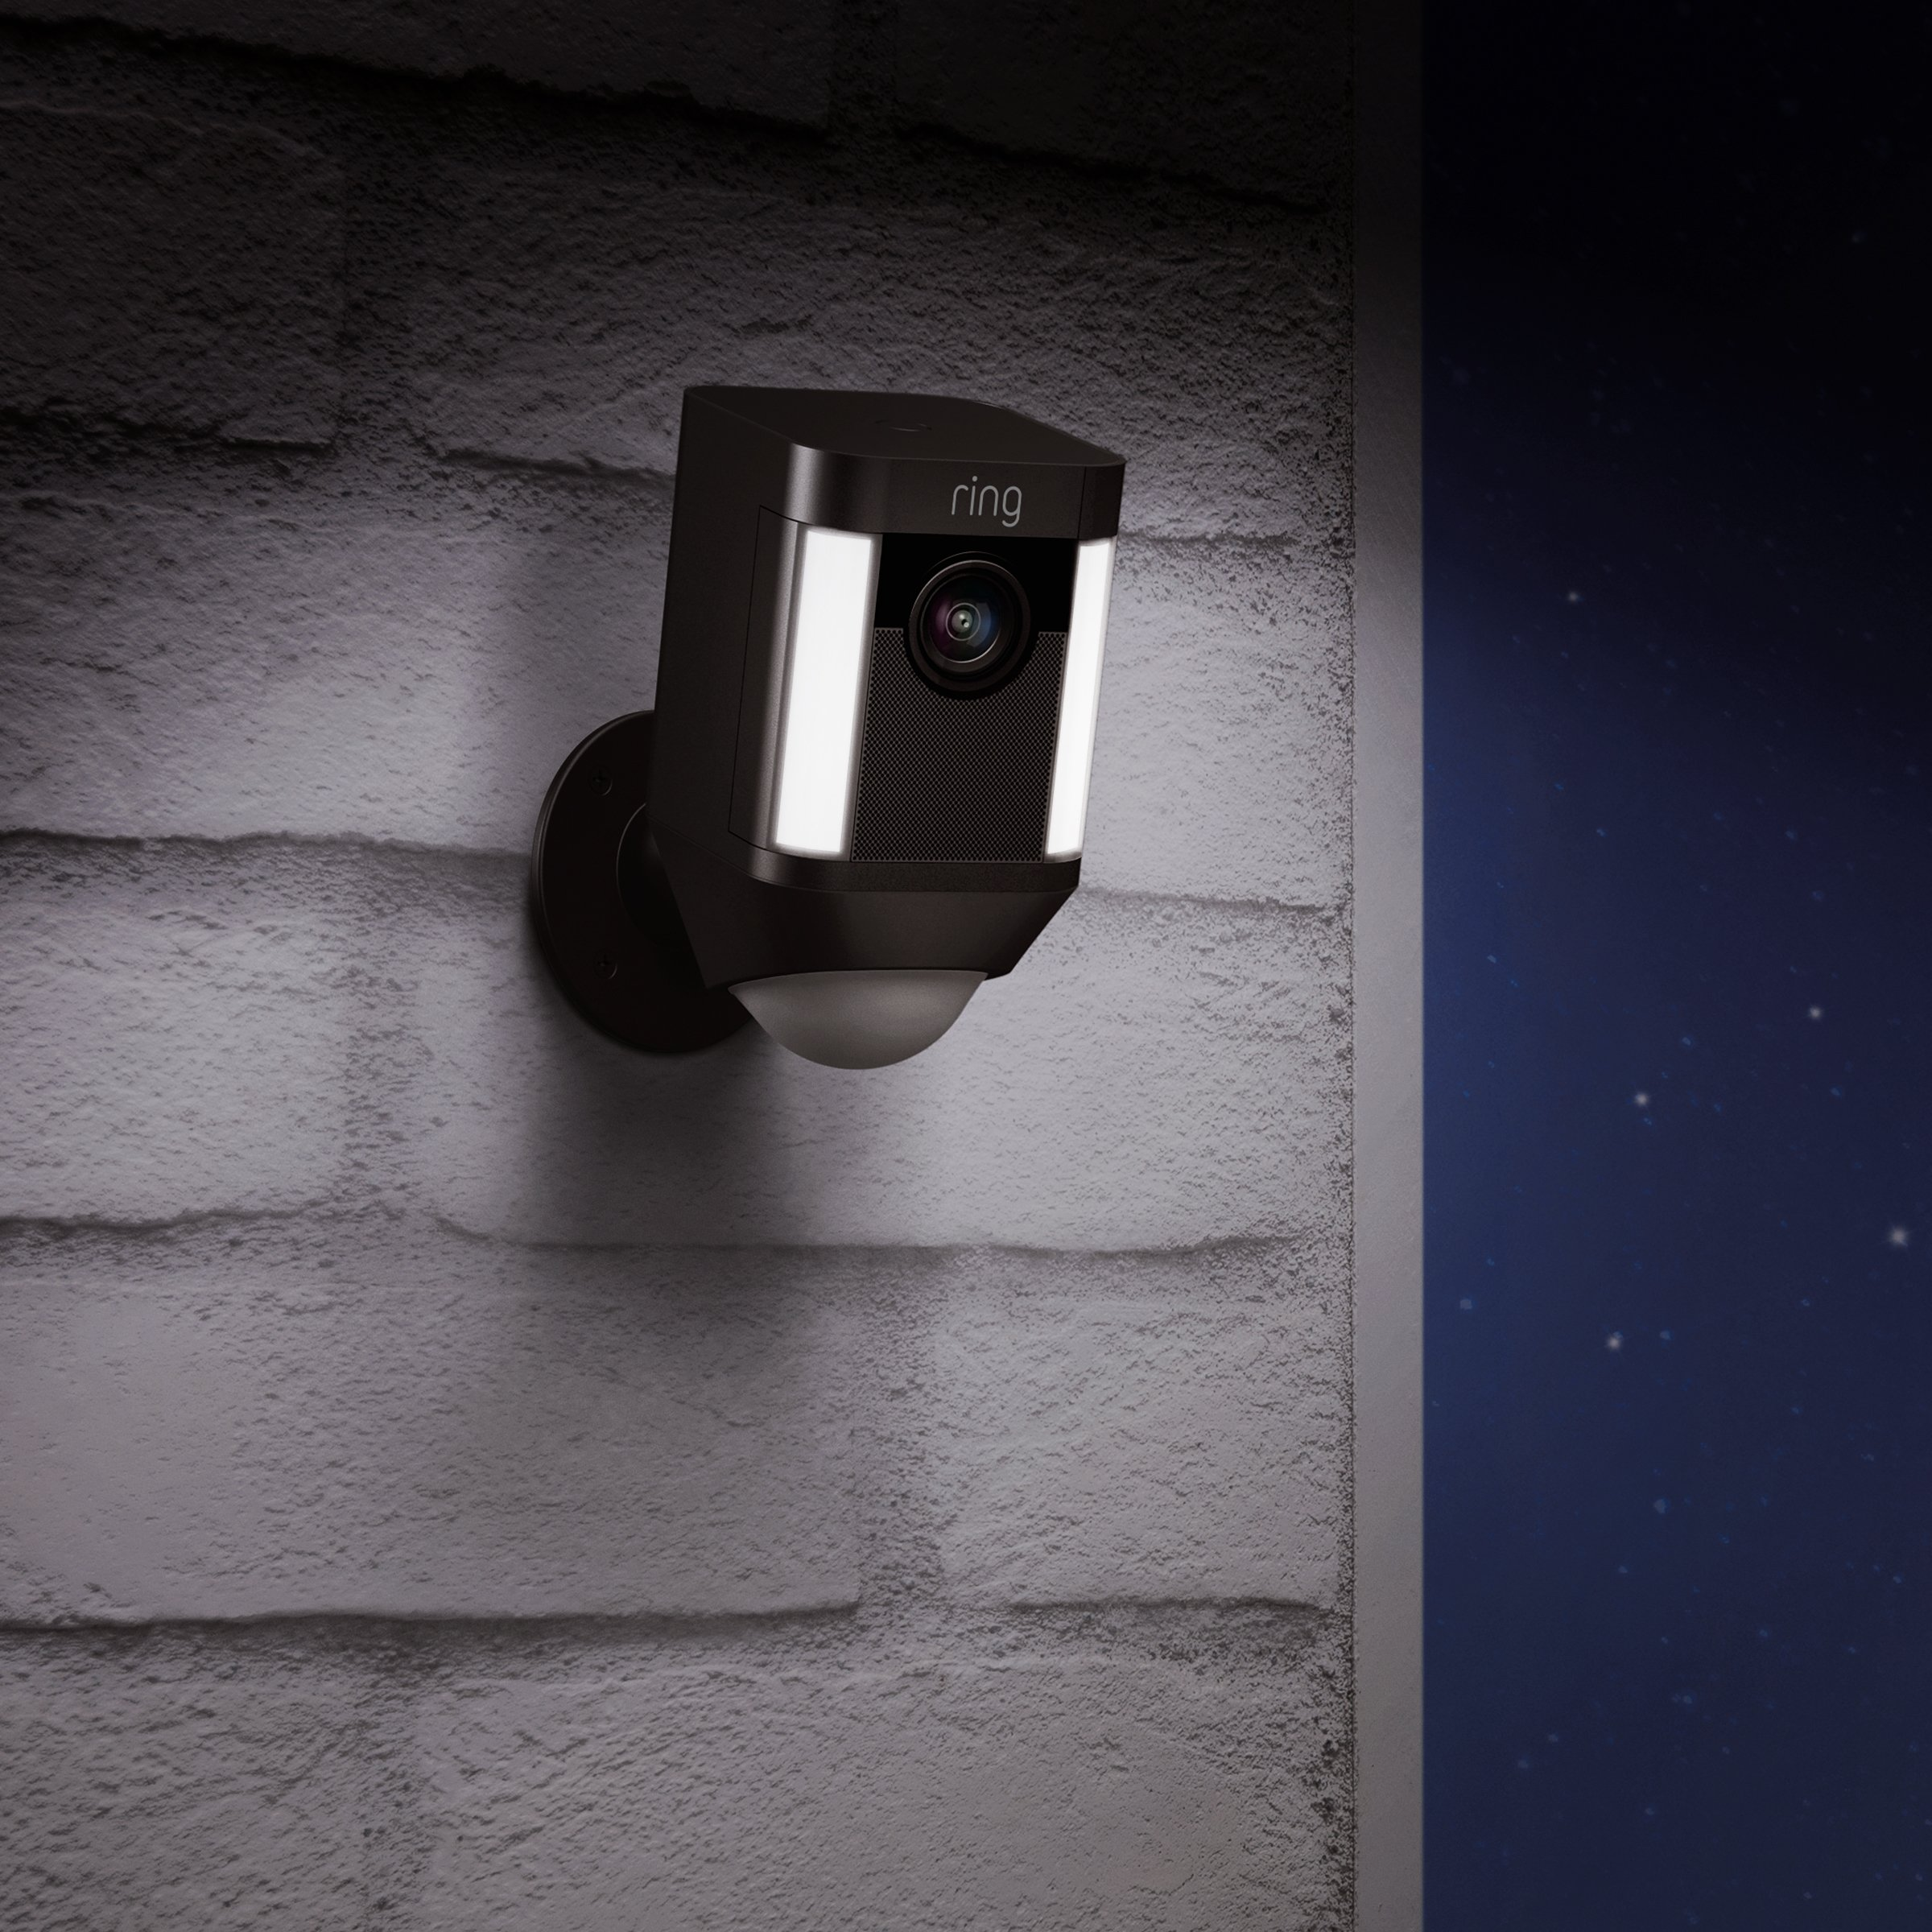 Ring Spotlight Cam Battery HD Security Camera with Built Two-Way Talk and a Siren Alarm, Black, Works with Alexa by Ring (Image #2)